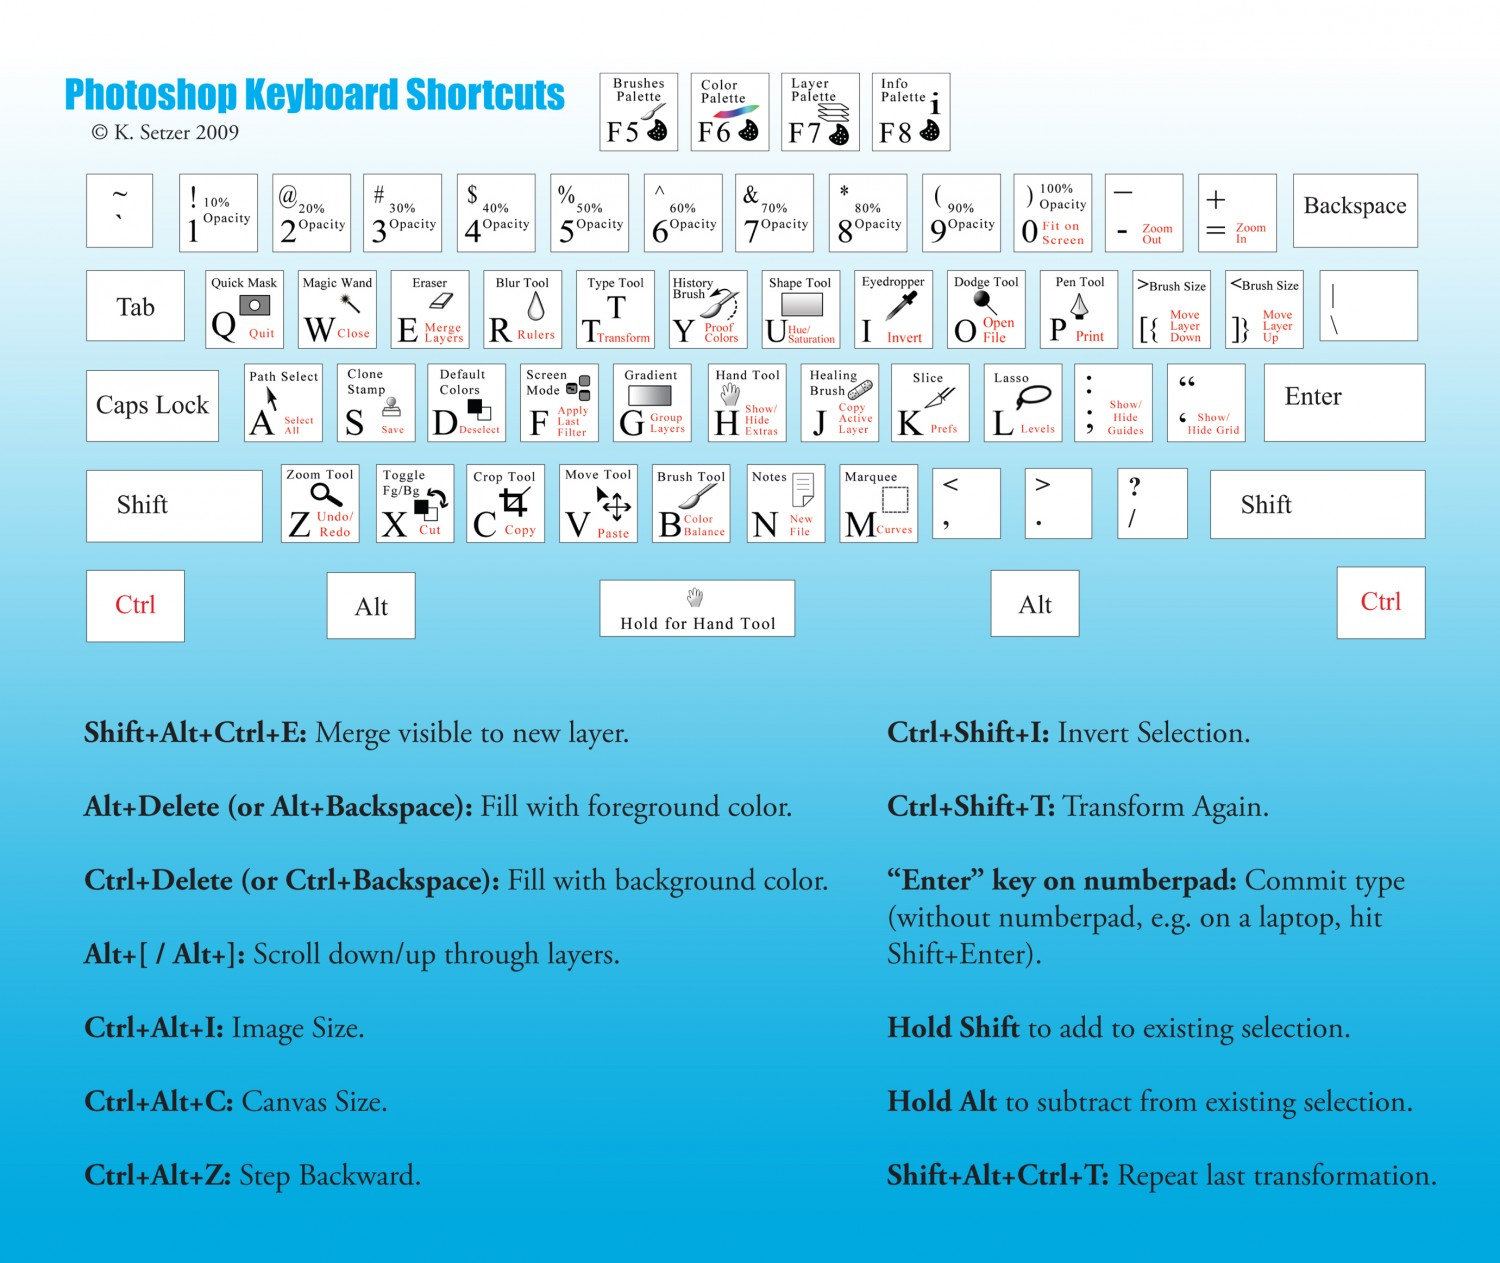 photoshop keyboard shortcuts cheat sheet 502914a919a64 w15001 - 101 Photoshop Tips in 5 Minutes